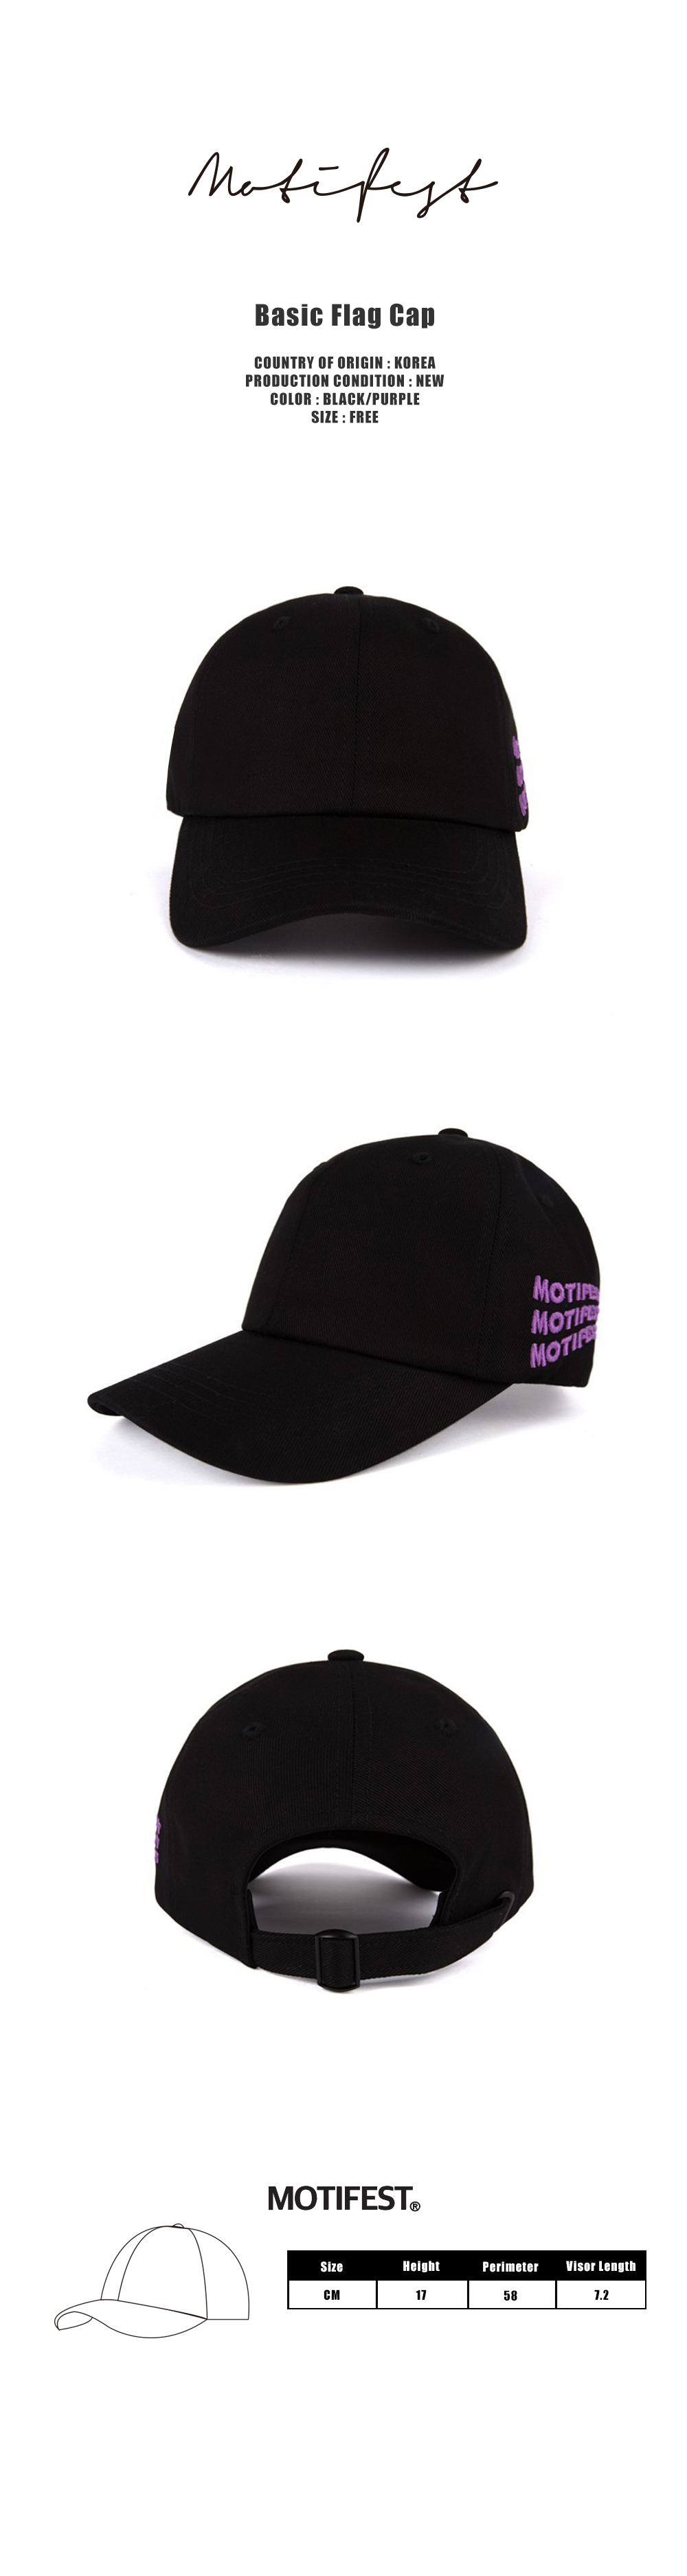 Basic Flag Cap Black Purple-1000.jpg